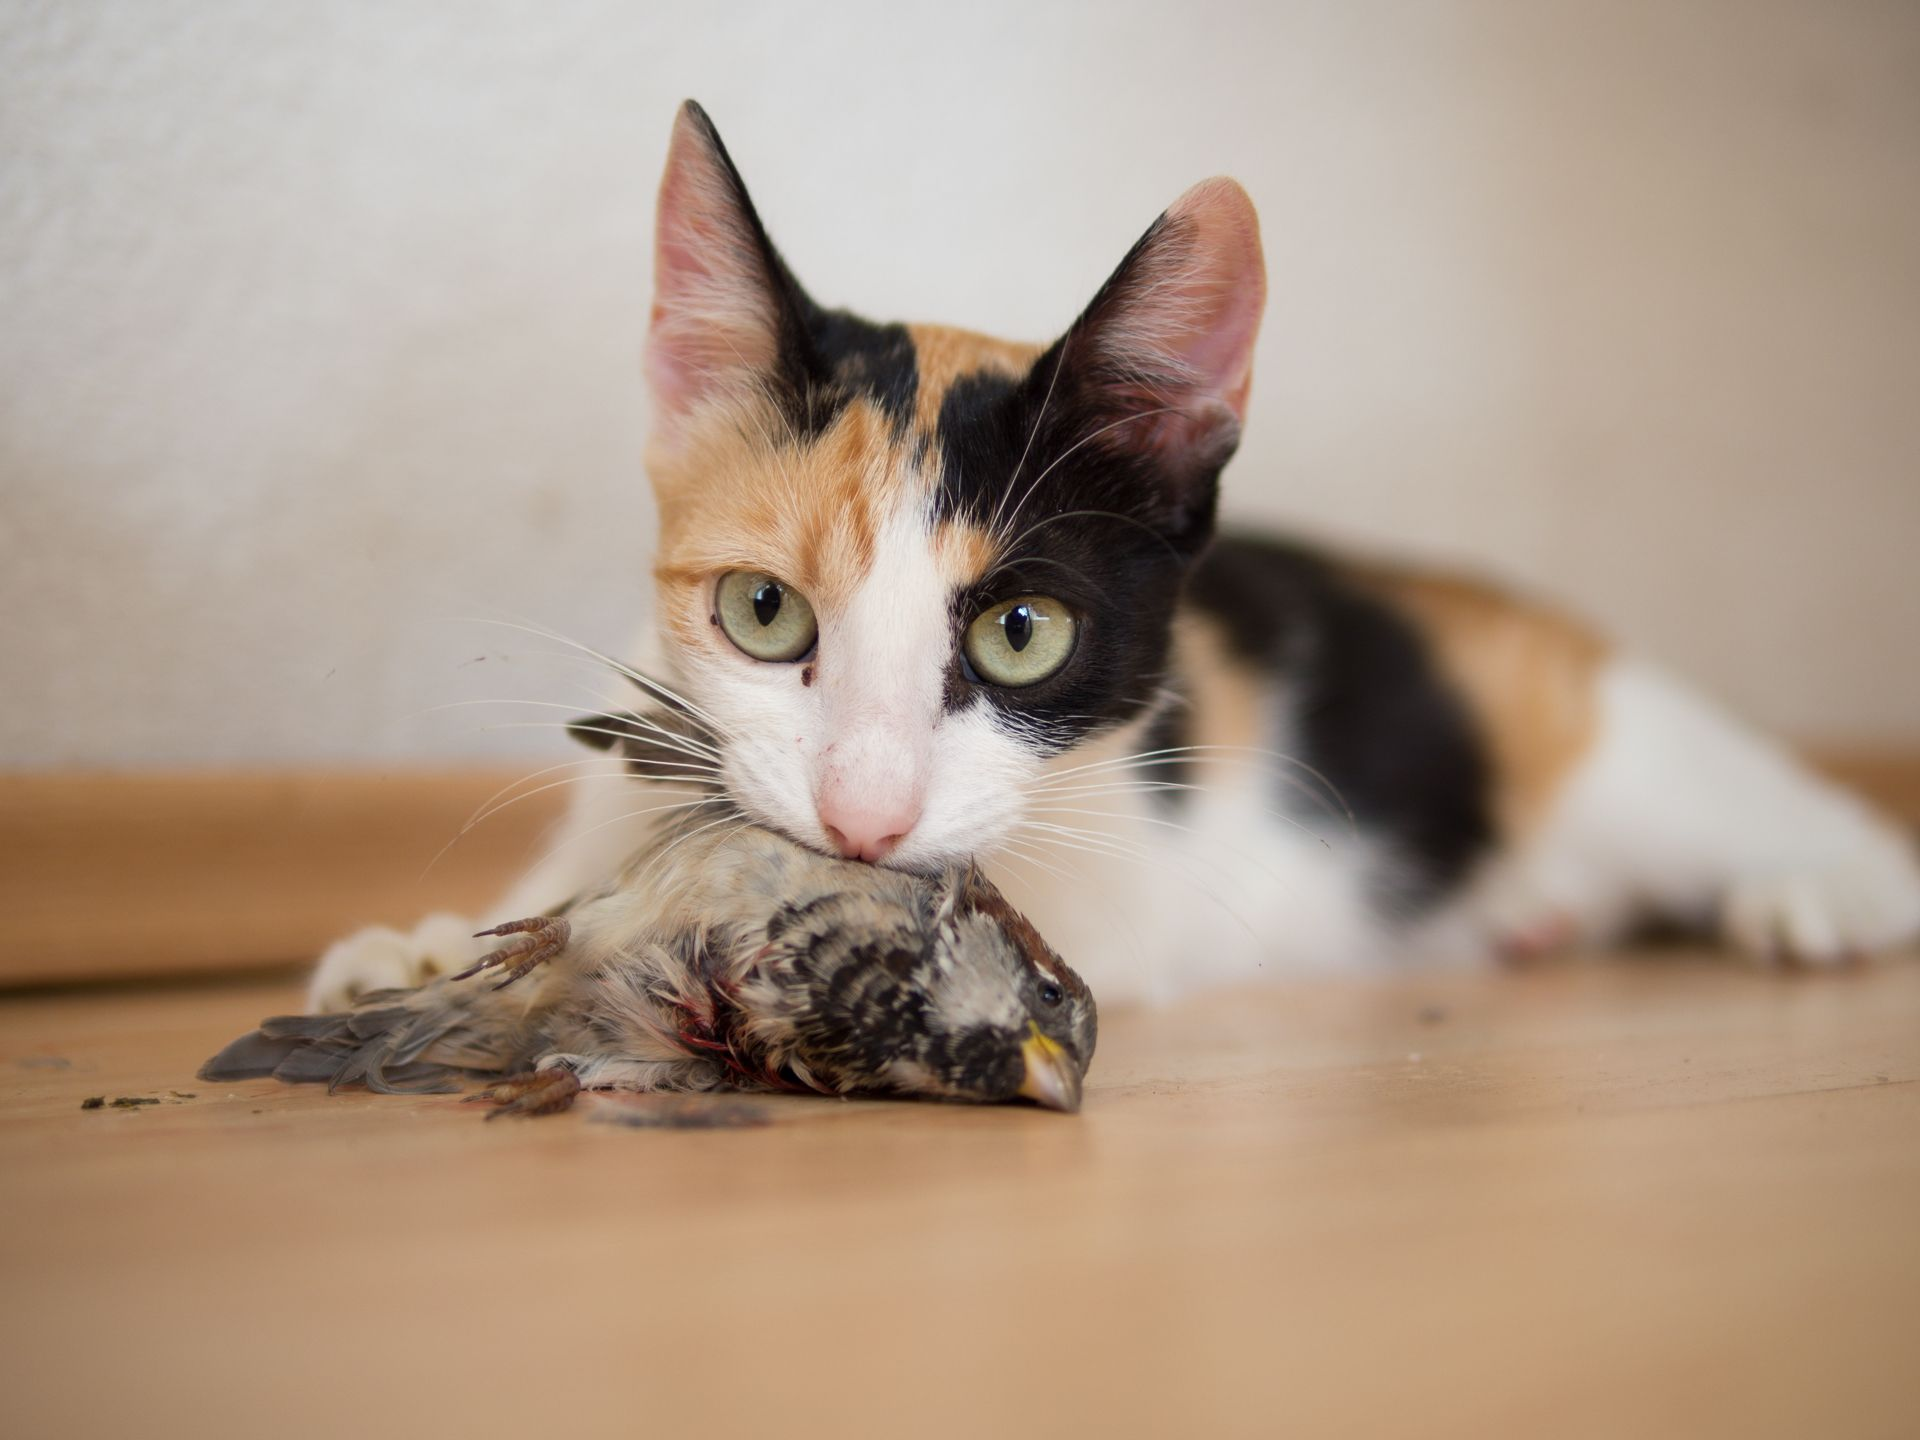 Cat Holding A Caught Bird In Its Mouth Cats Animals Bird